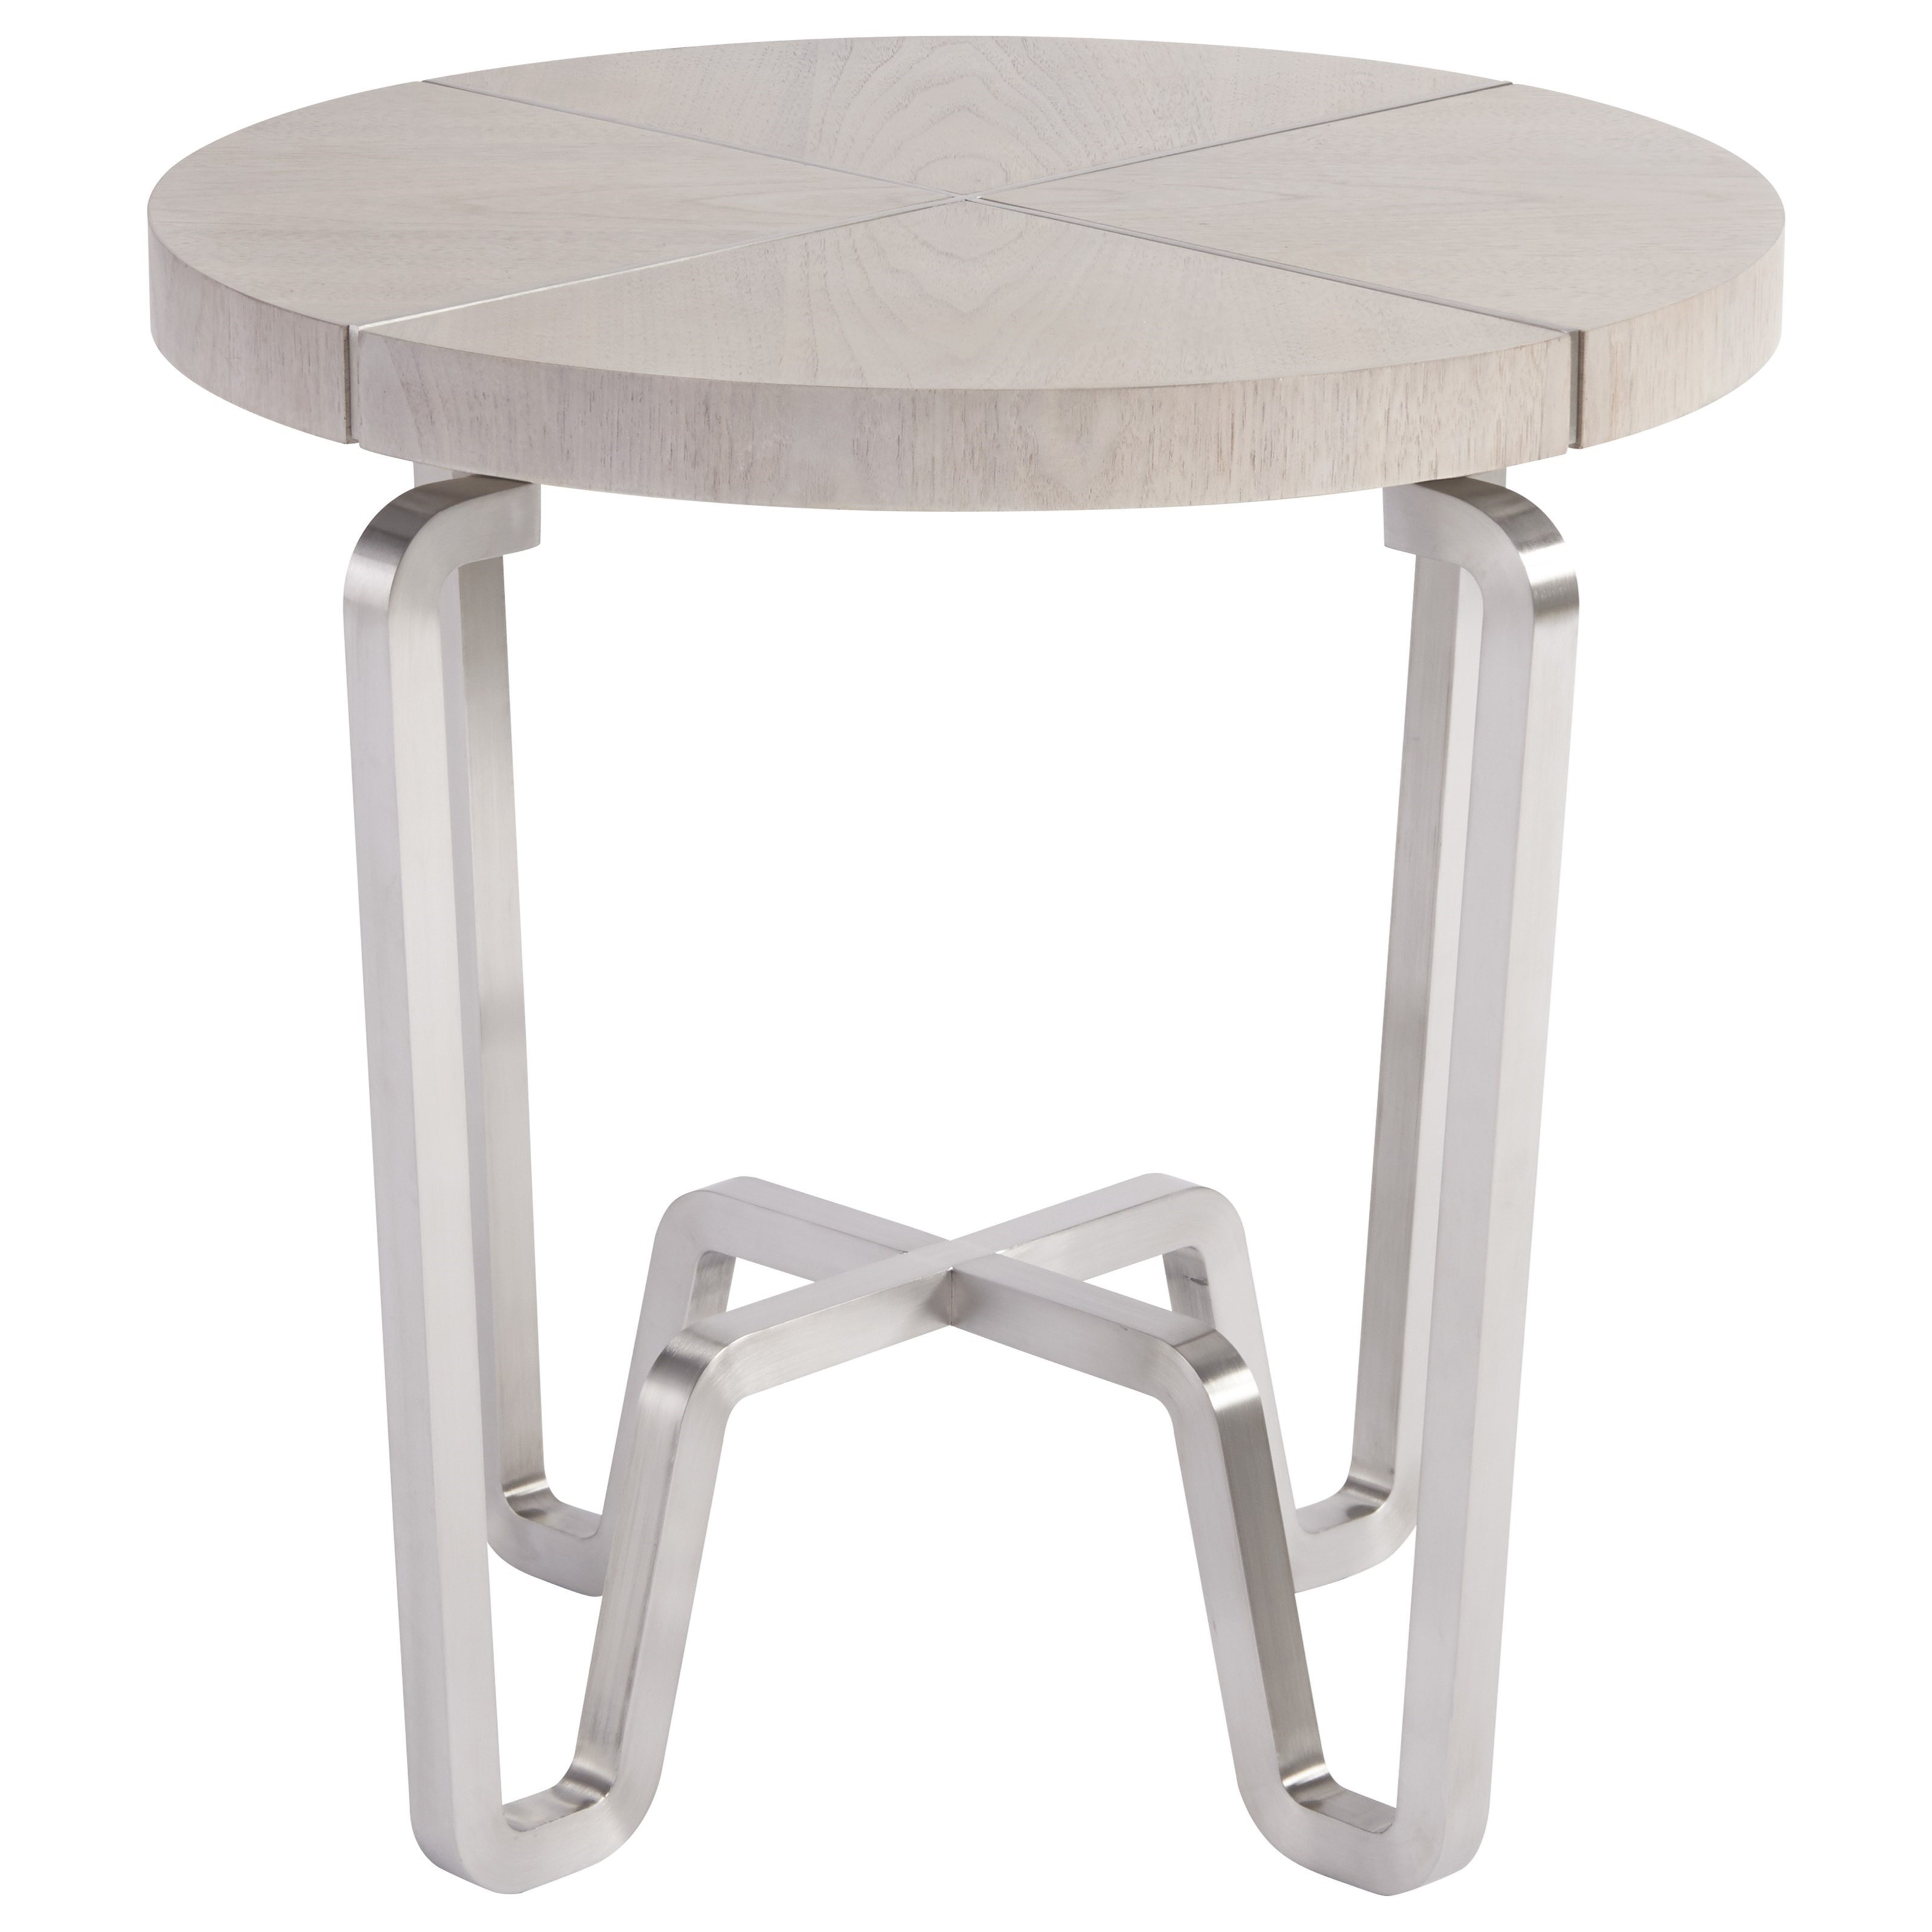 Spaces Mist Chatham End Table With Silver Base By Wittman U0026 Co.